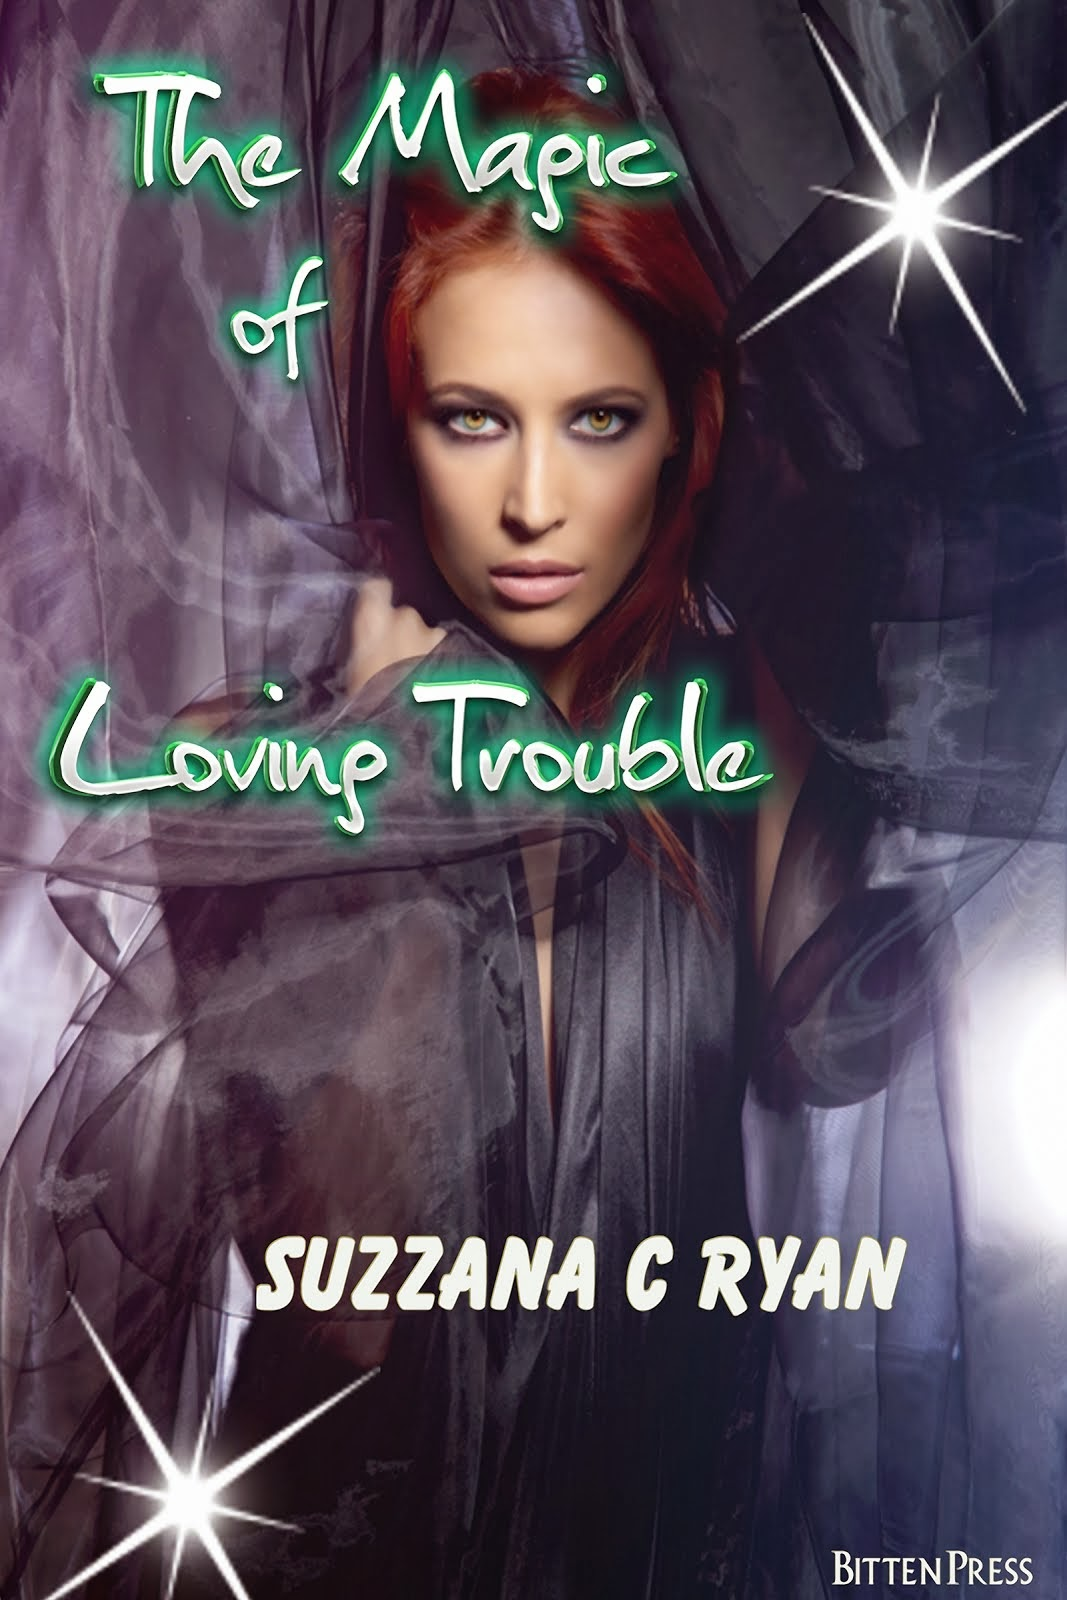 The magic of Loving Trouble